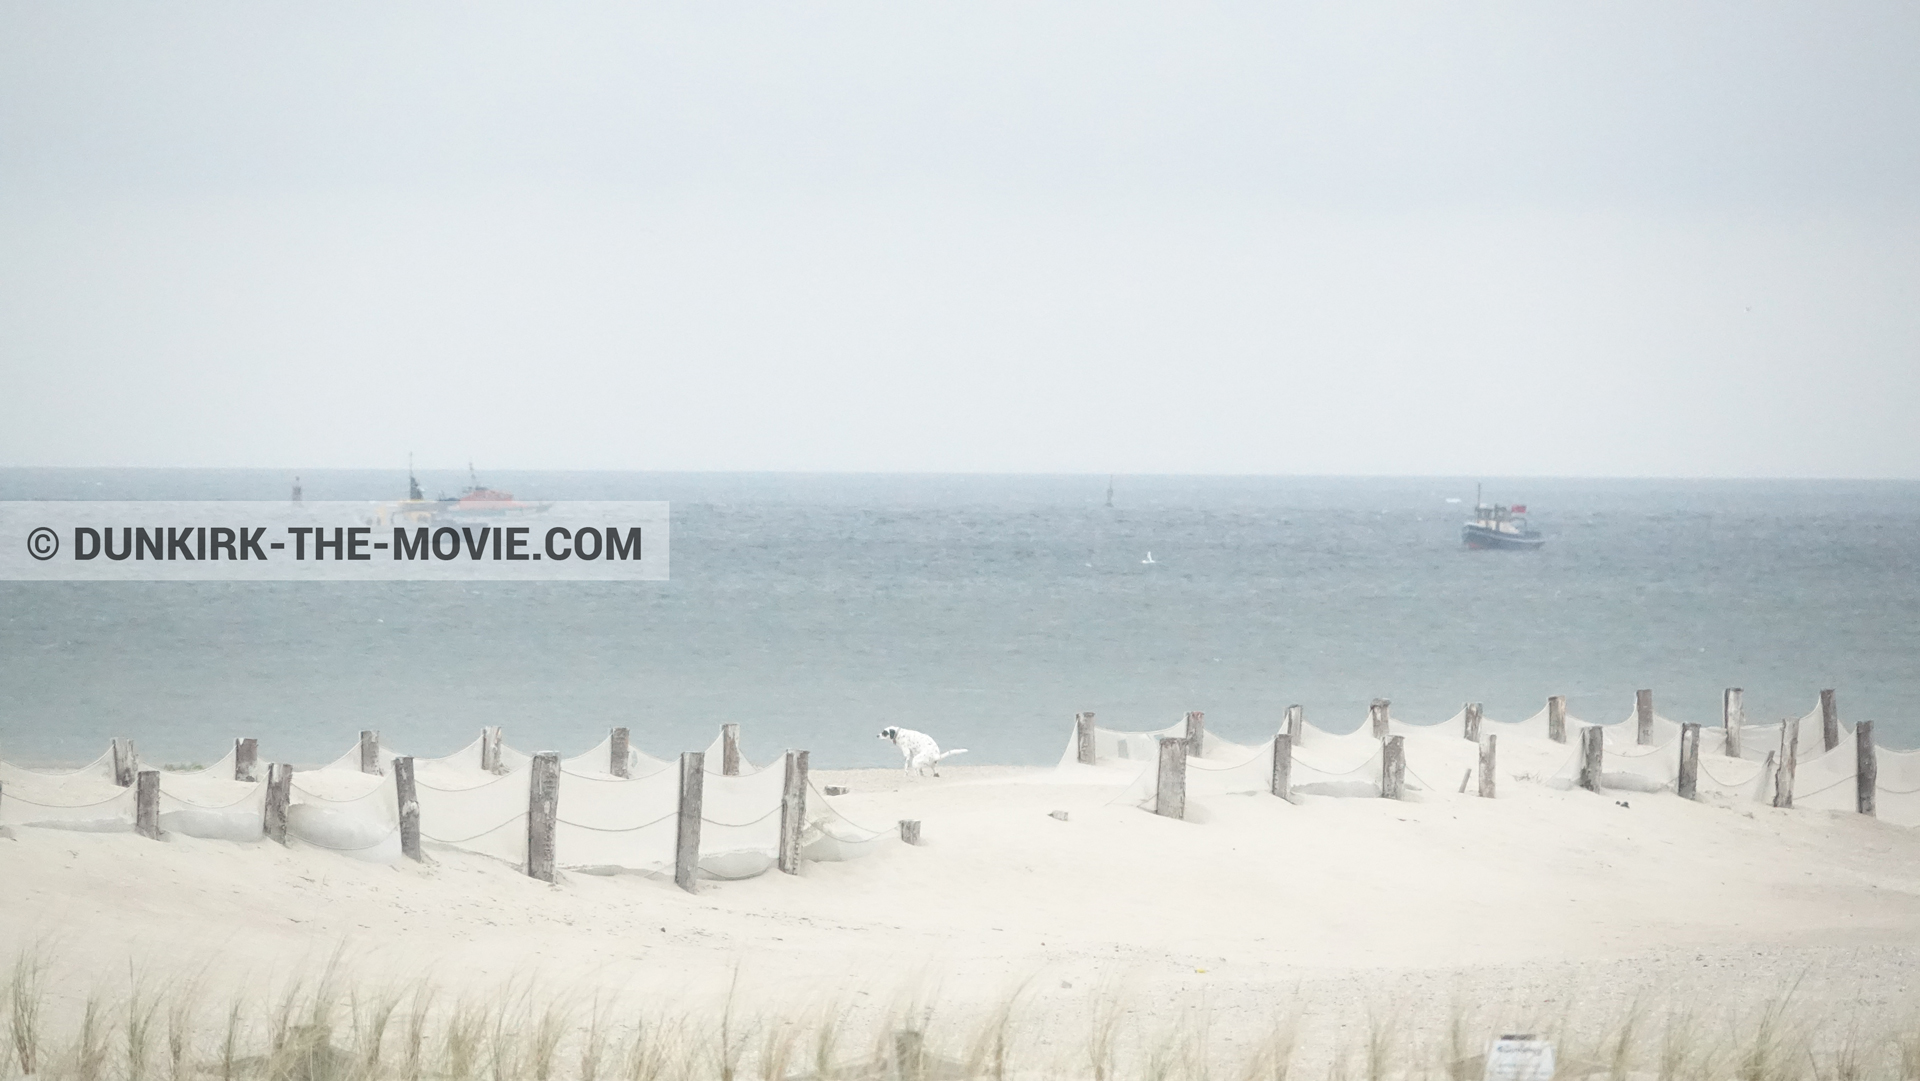 Picture with boat, grey sky, beach,  from behind the scene of the Dunkirk movie by Nolan